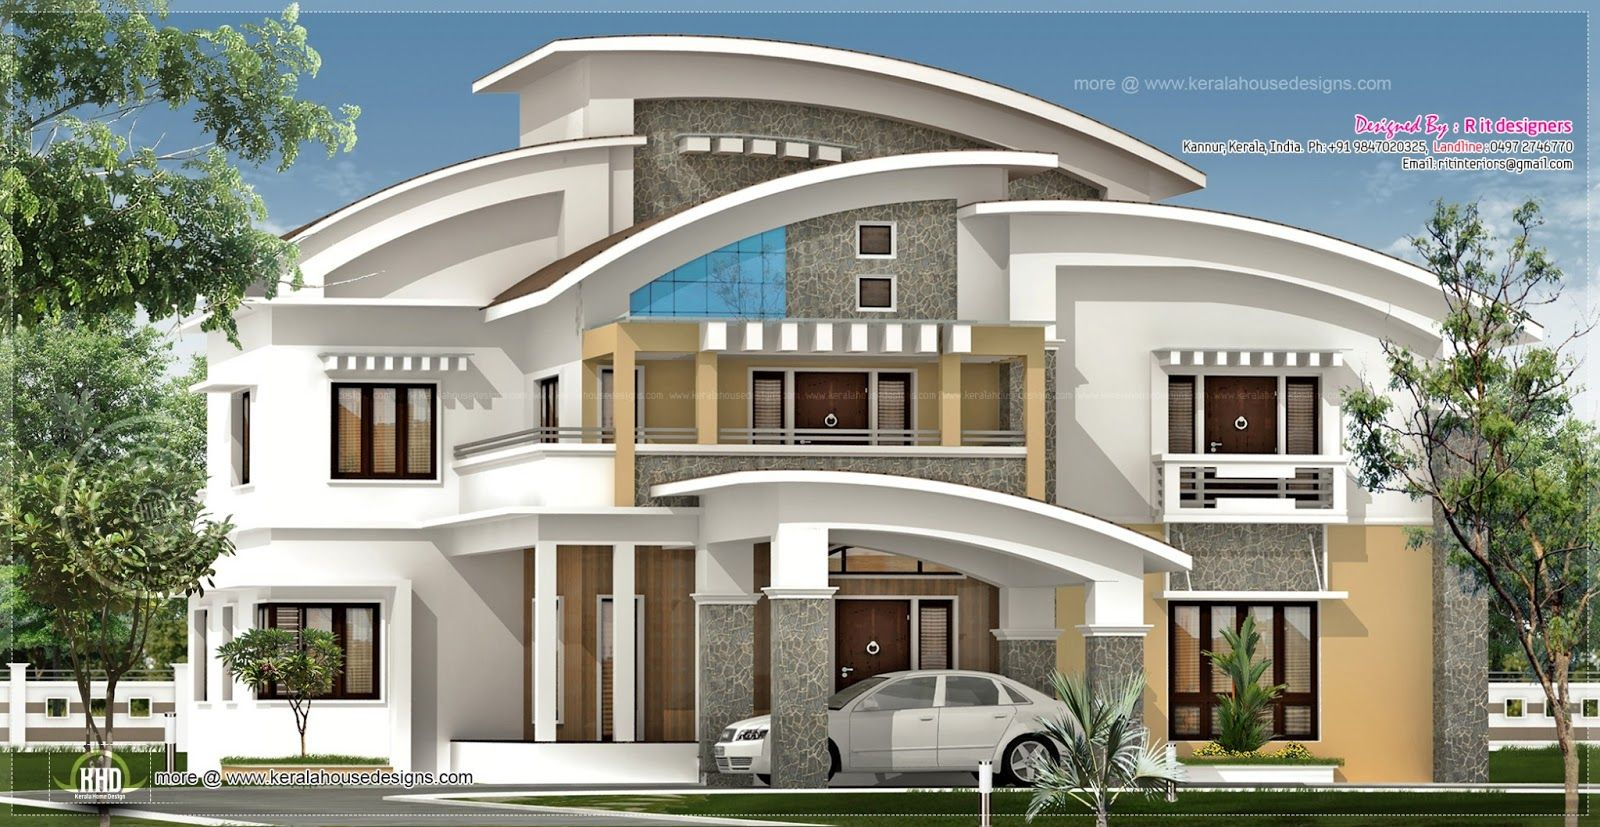 Luxury Home Exterior Designs  Square Feet Luxury Villa - Home exterior designer